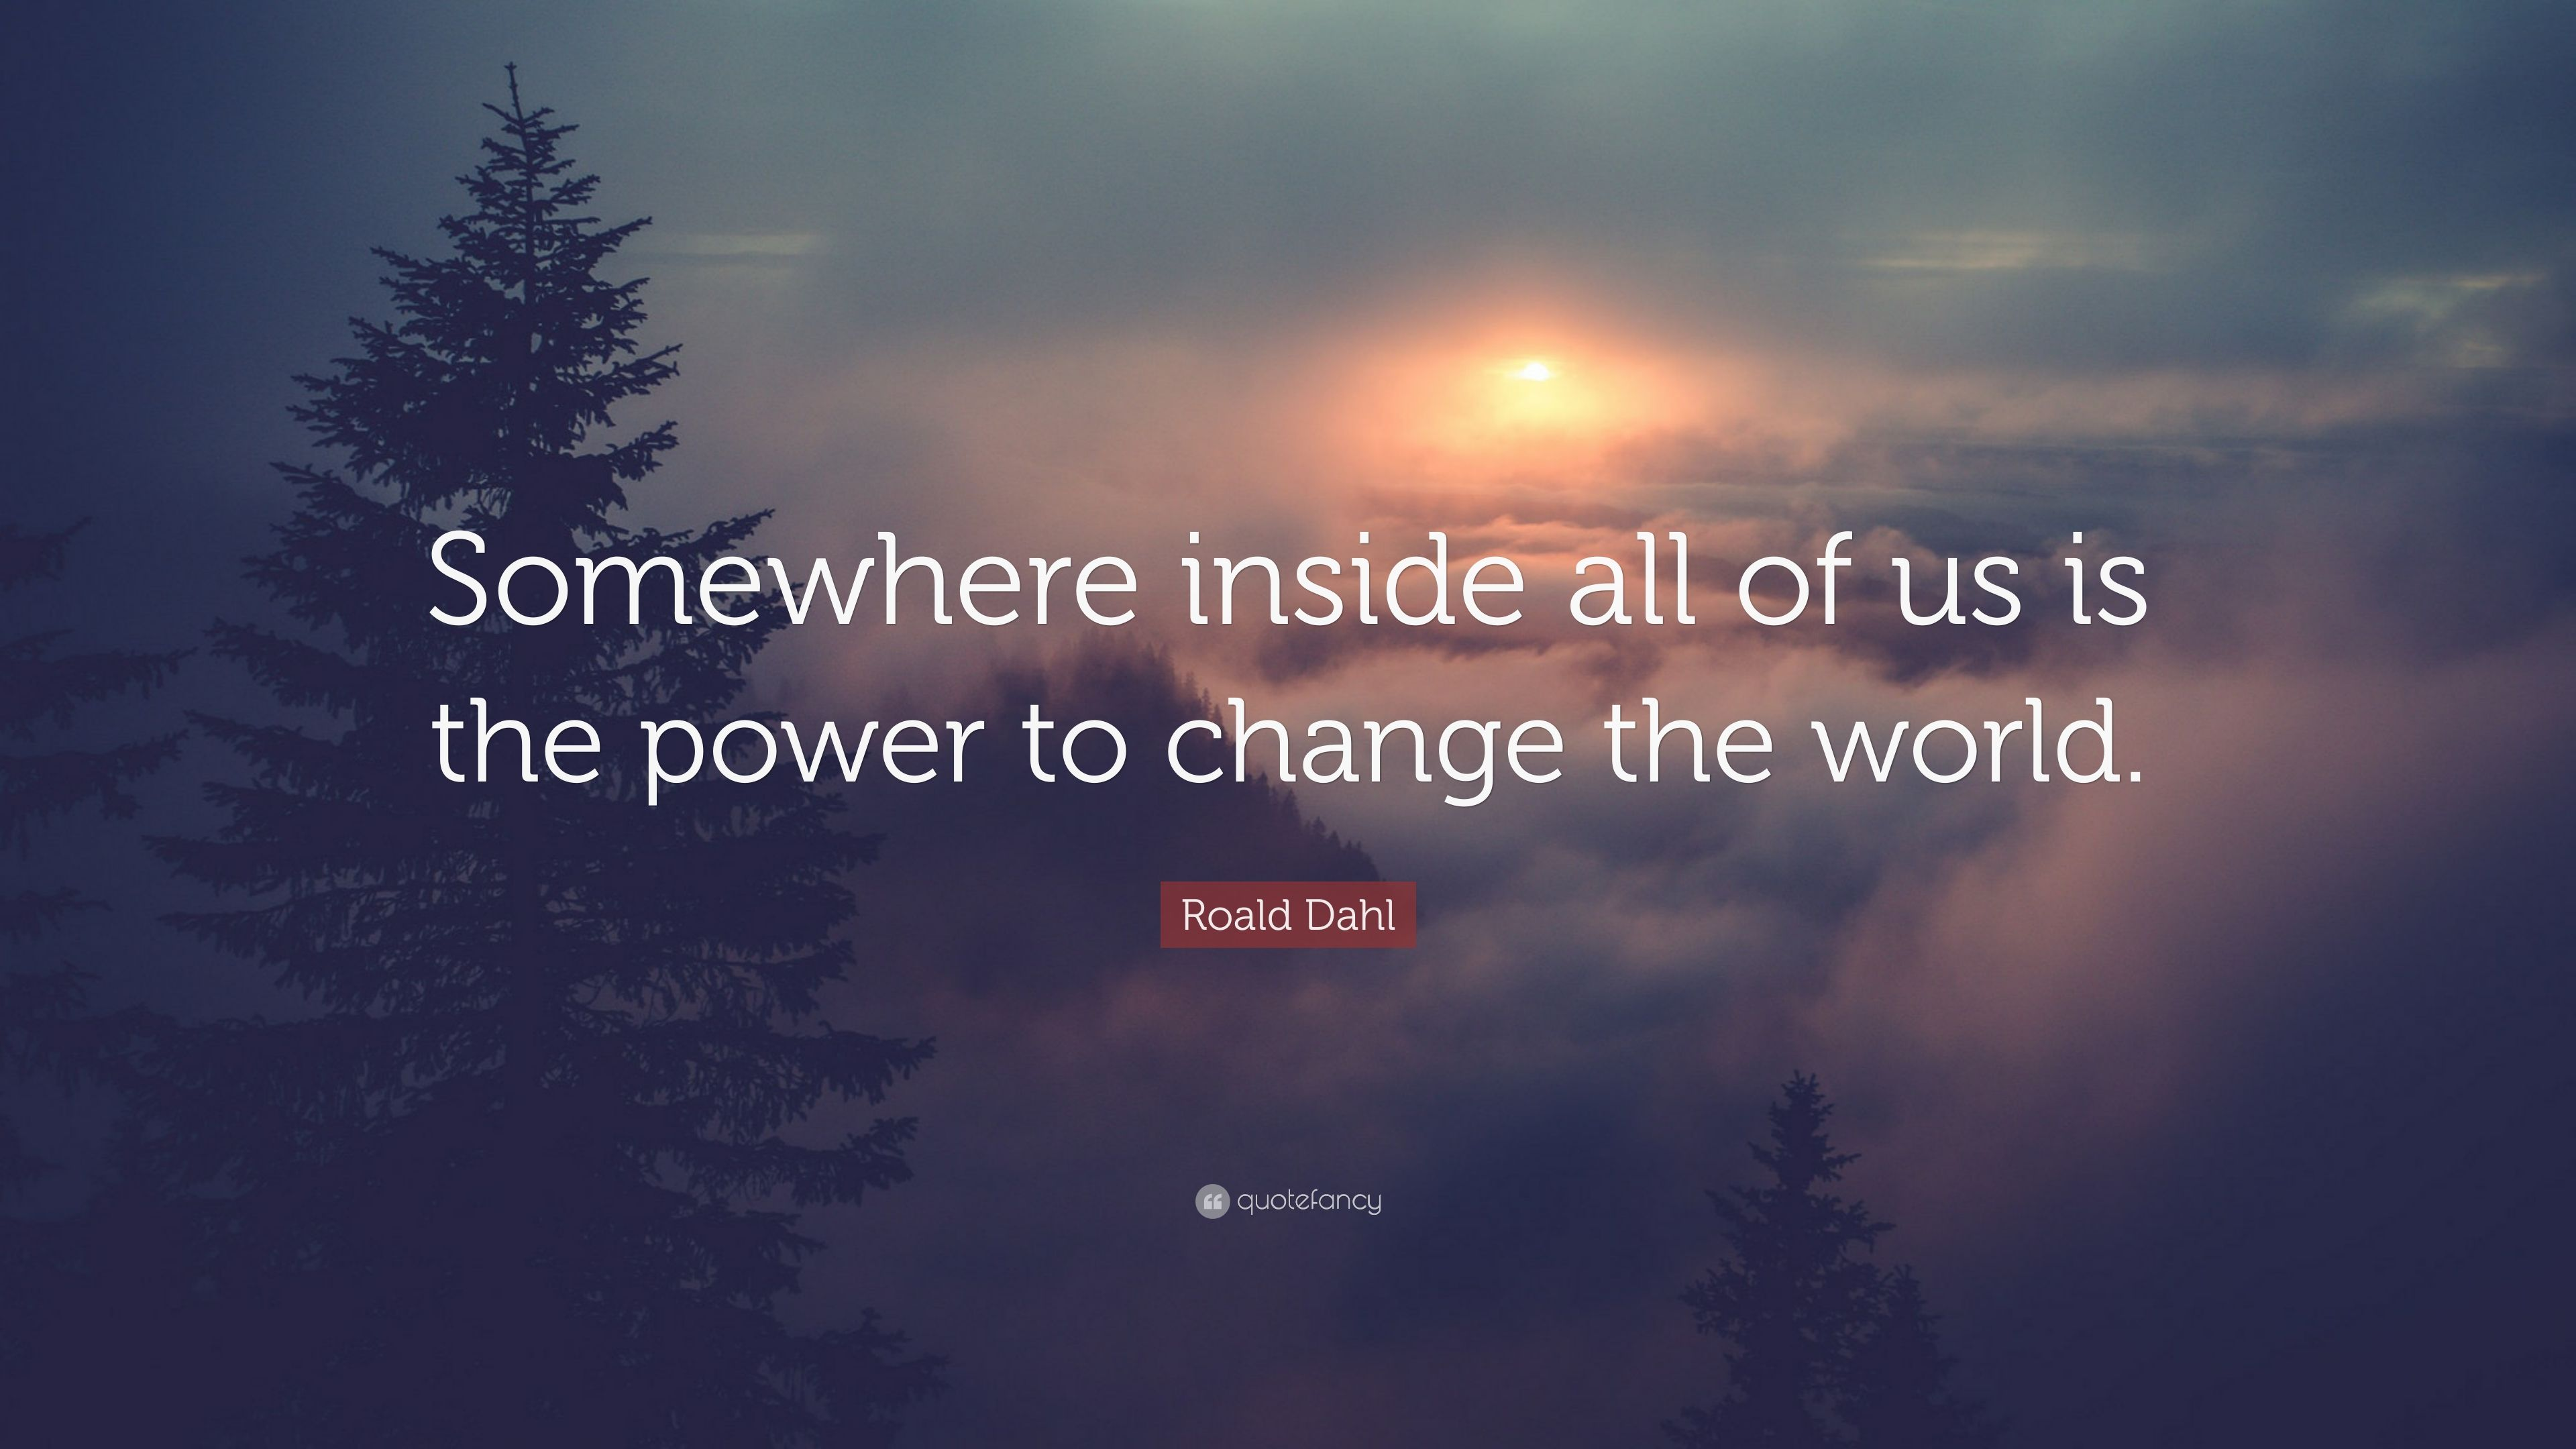 Dalai Lama Wallpaper Quotes Roald Dahl Quote Somewhere Inside All Of Us Is The Power